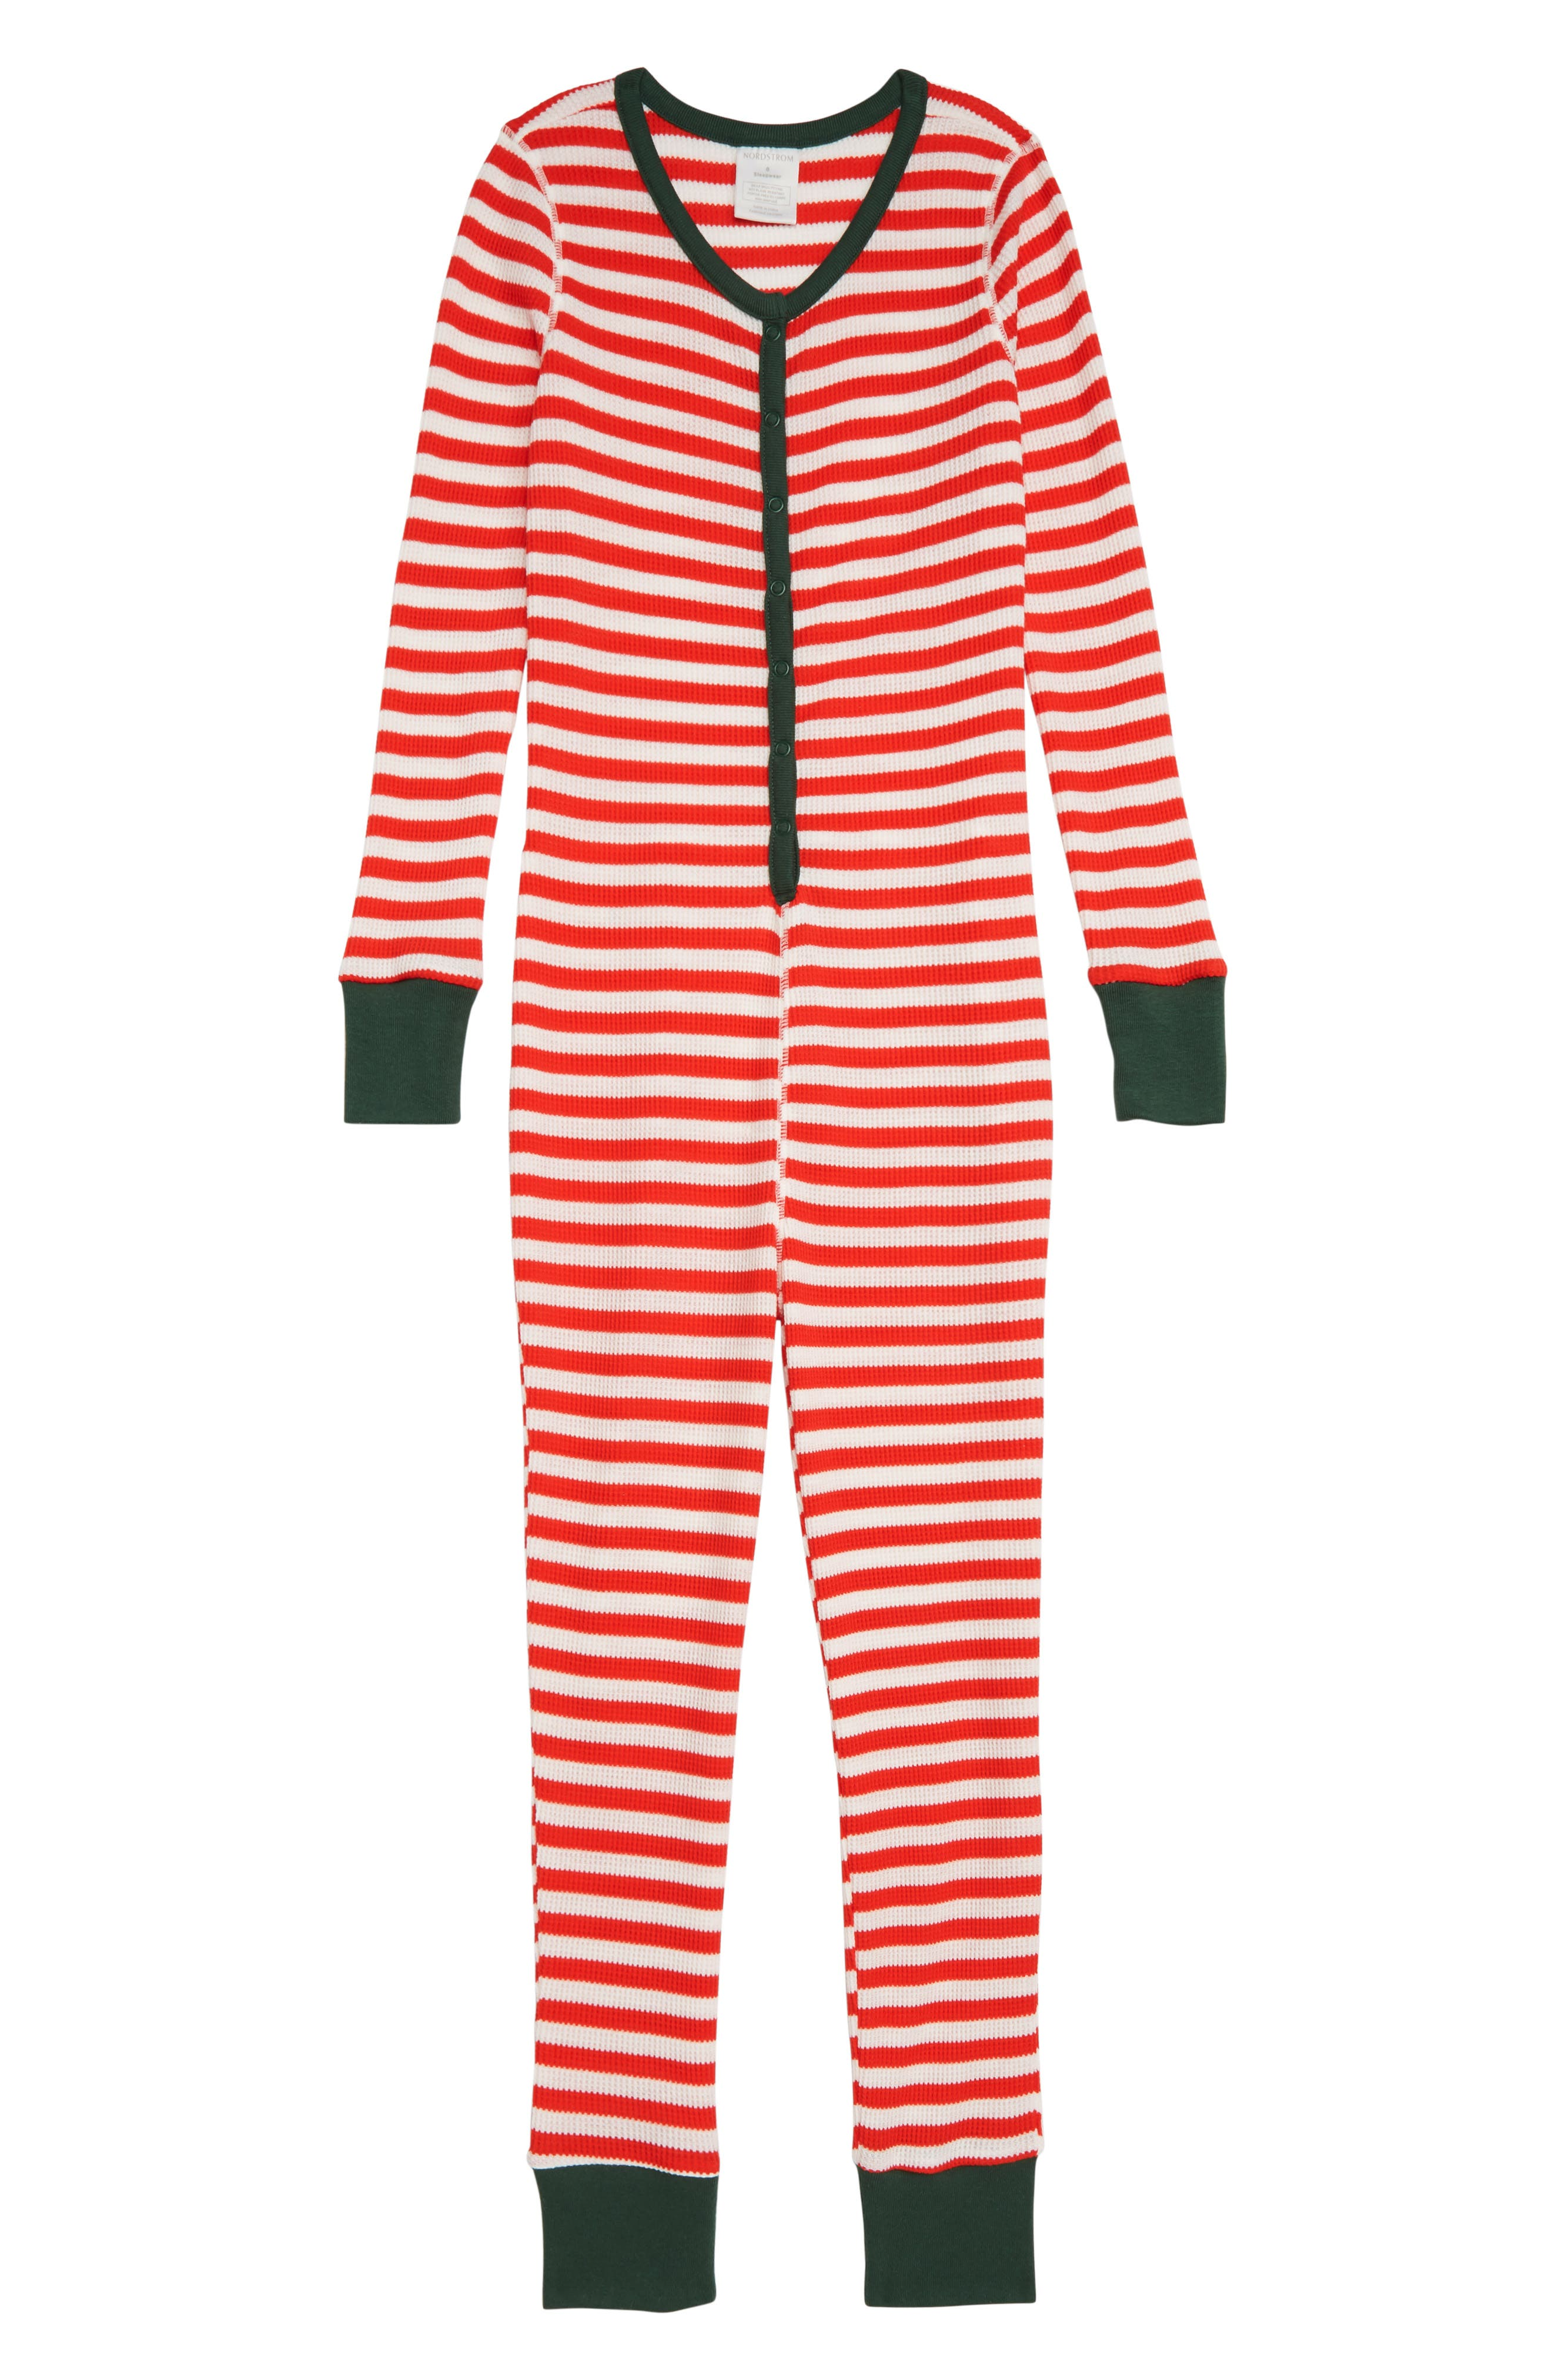 Thermal Fitted One-Piece Pajamas,                             Main thumbnail 1, color,                             RED BLOOM STRIPE